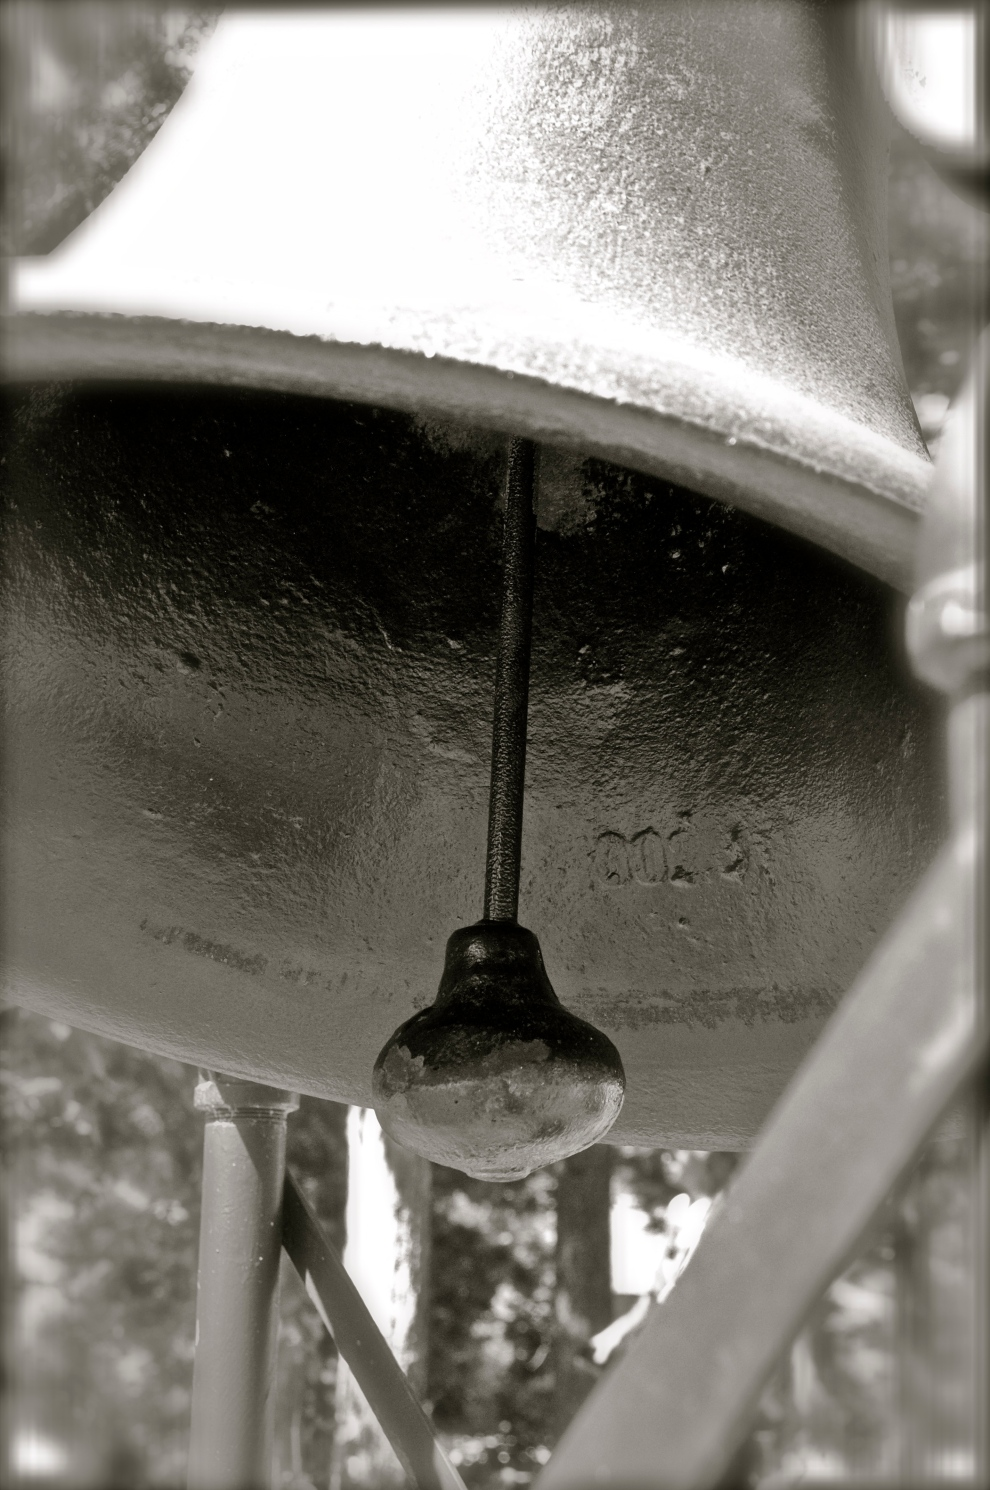 Taken on the Fourth of July 2011, this is actually a camp bell at Interlochen Center for the Arts. DL